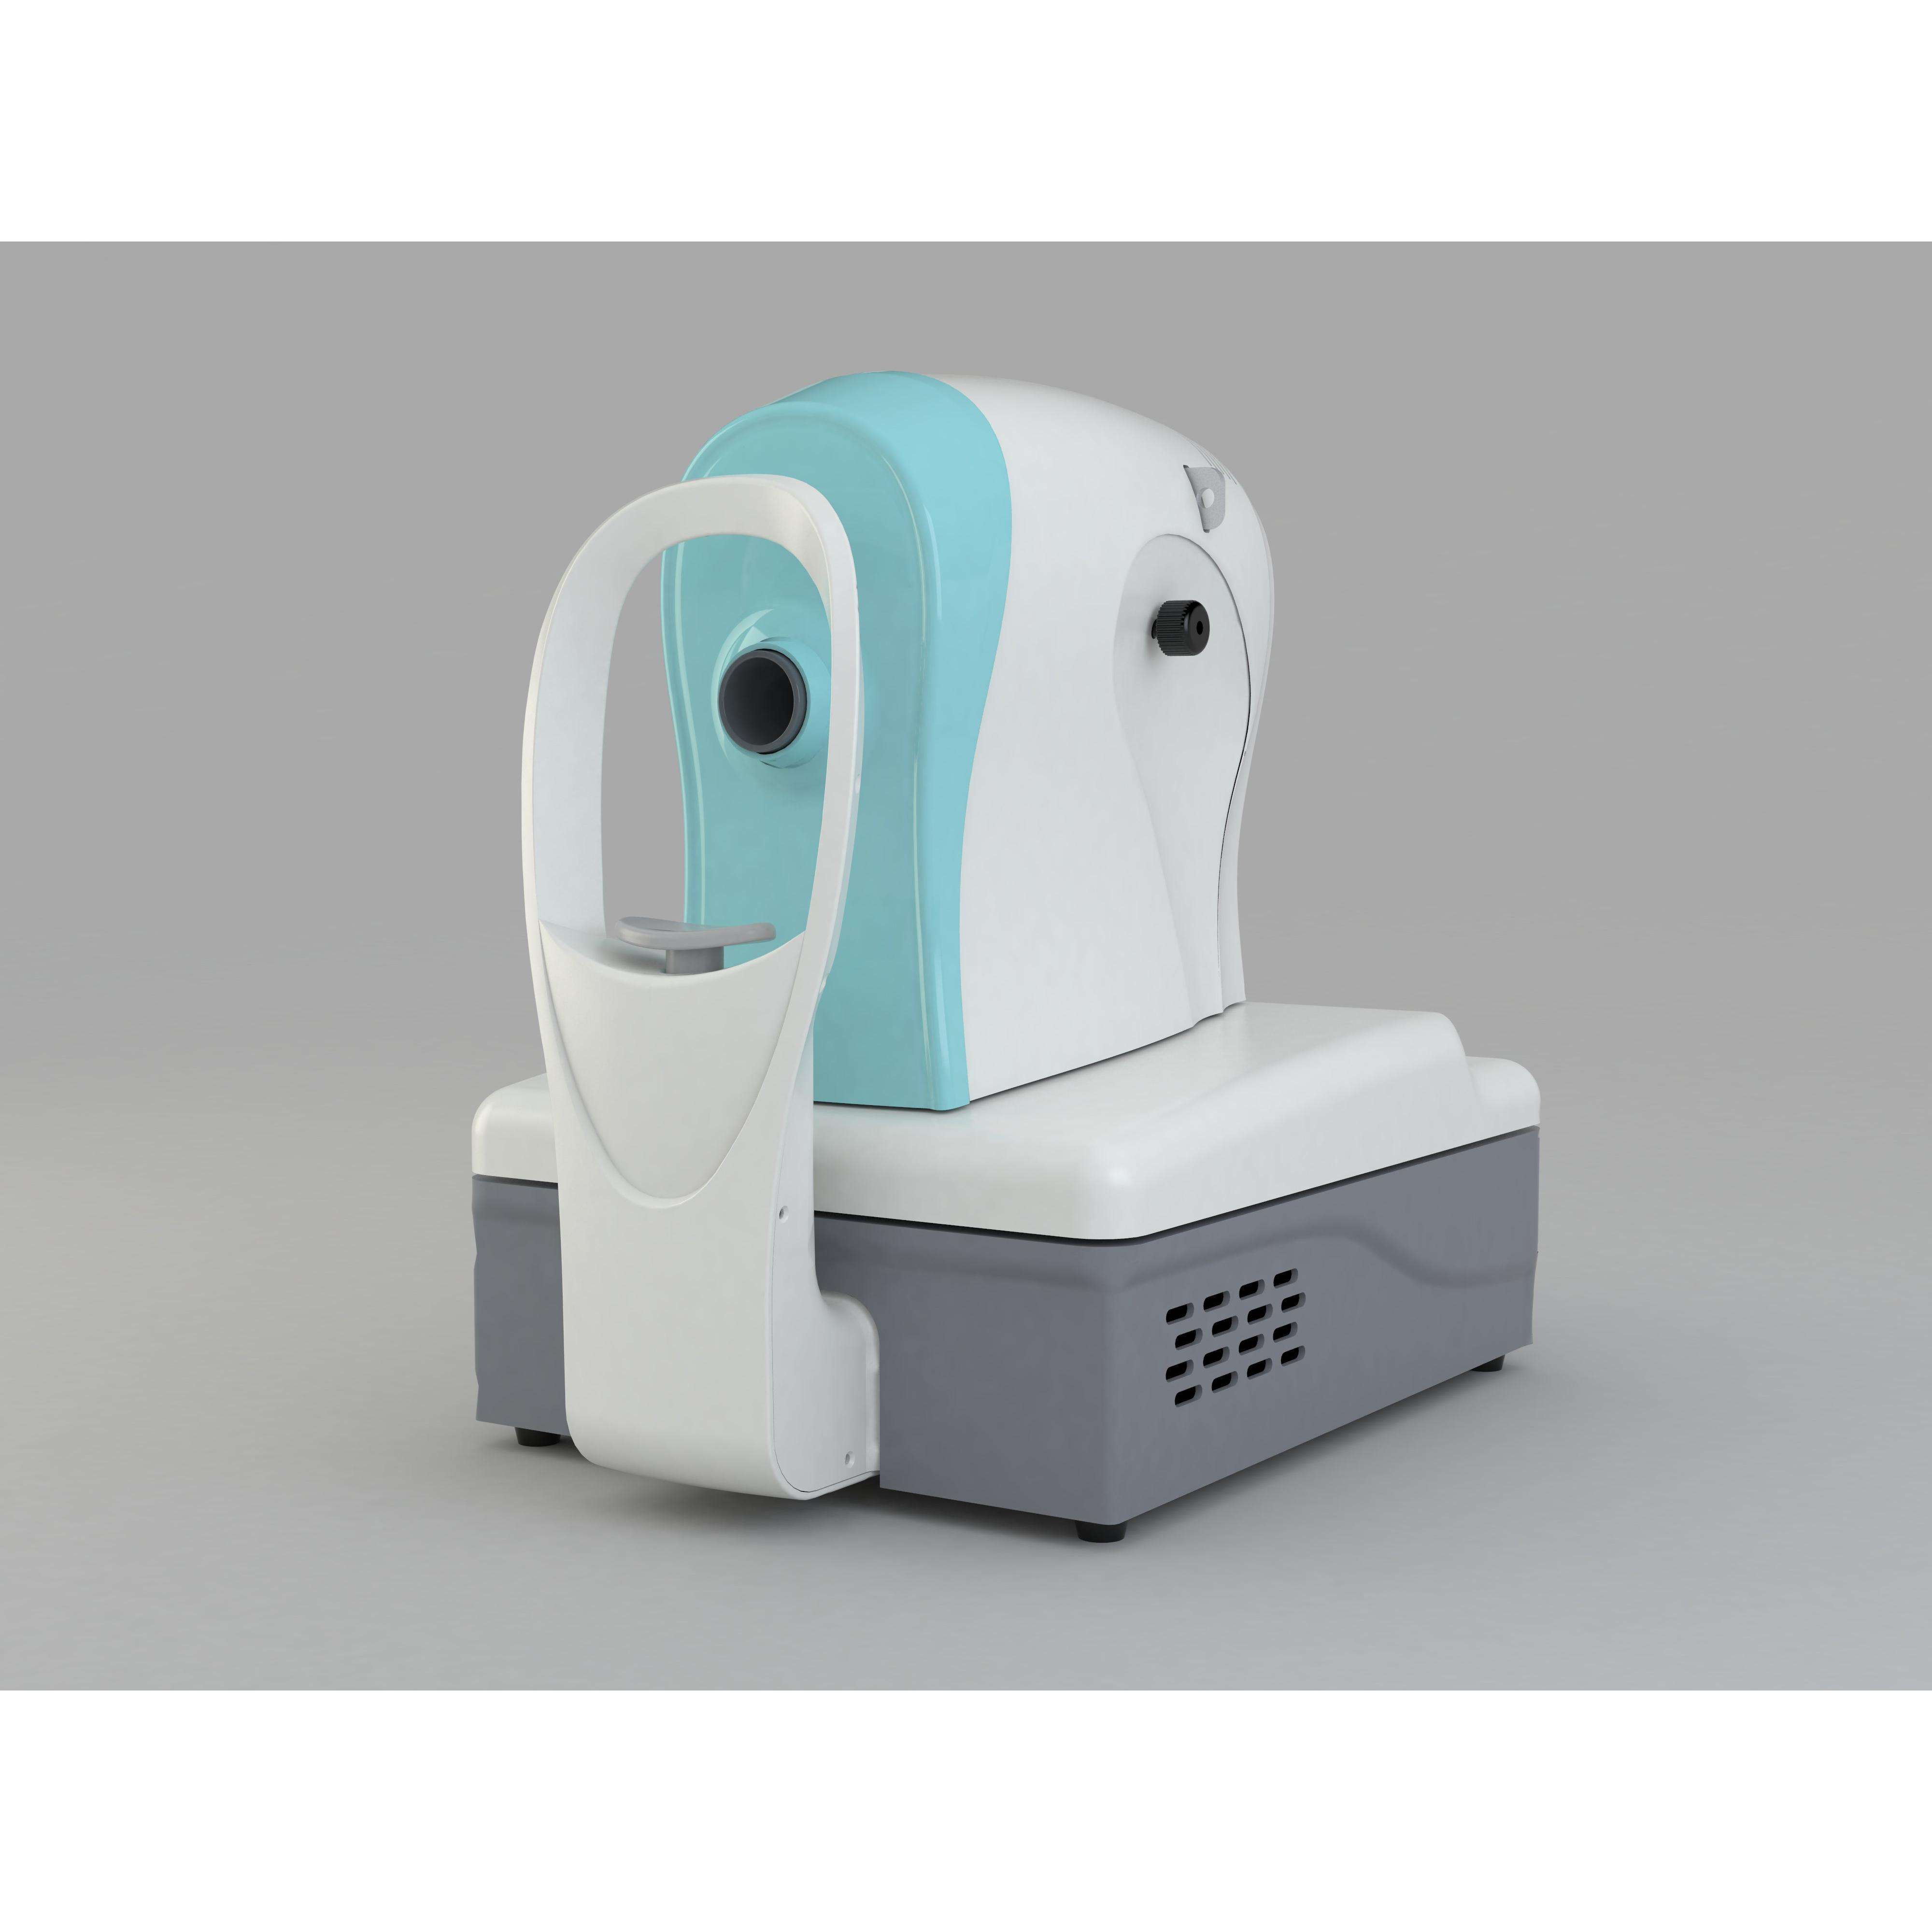 CNC Prototyping Company In China Now Announces To Offer Medical Device Prototyping Service For Medical Device Manufacturing Companies